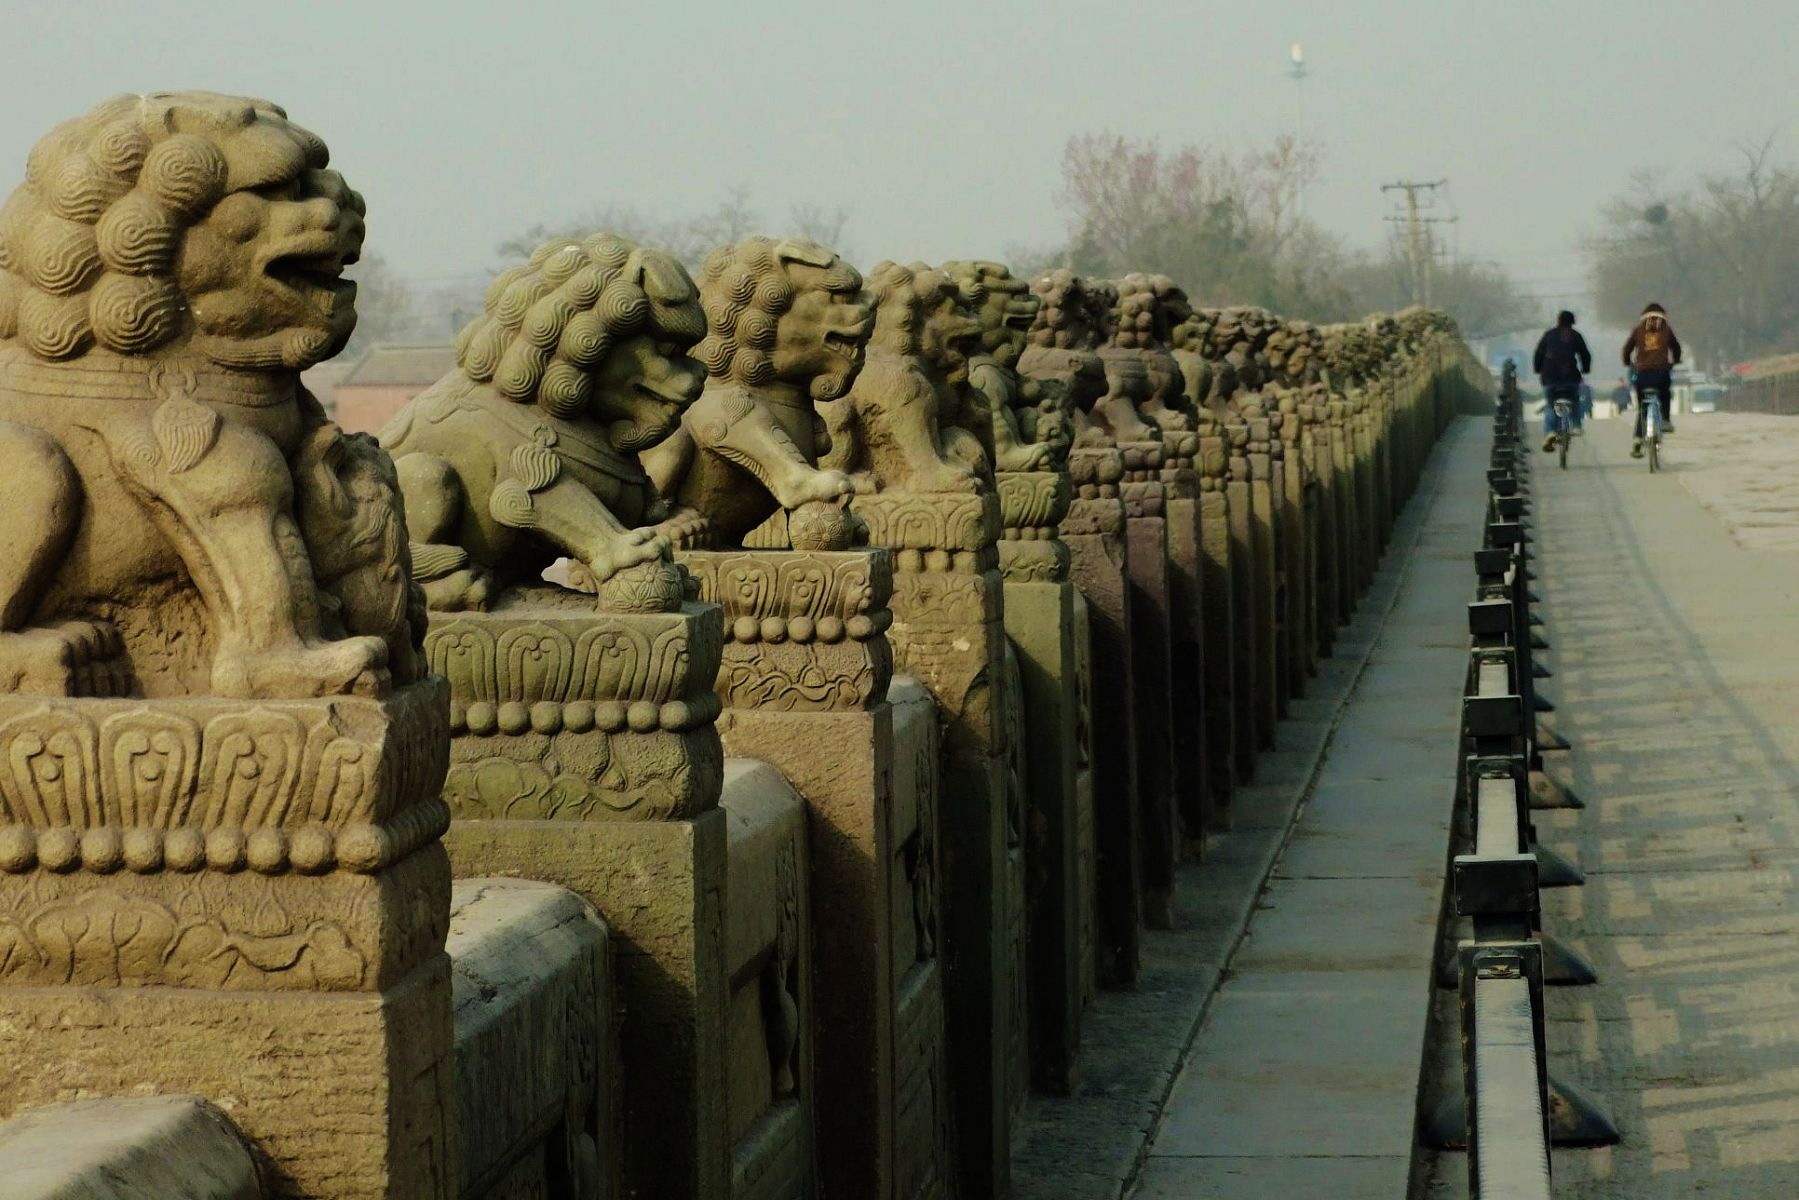 Marco Polo Bridge in Beijing's historic ~ Travel guide